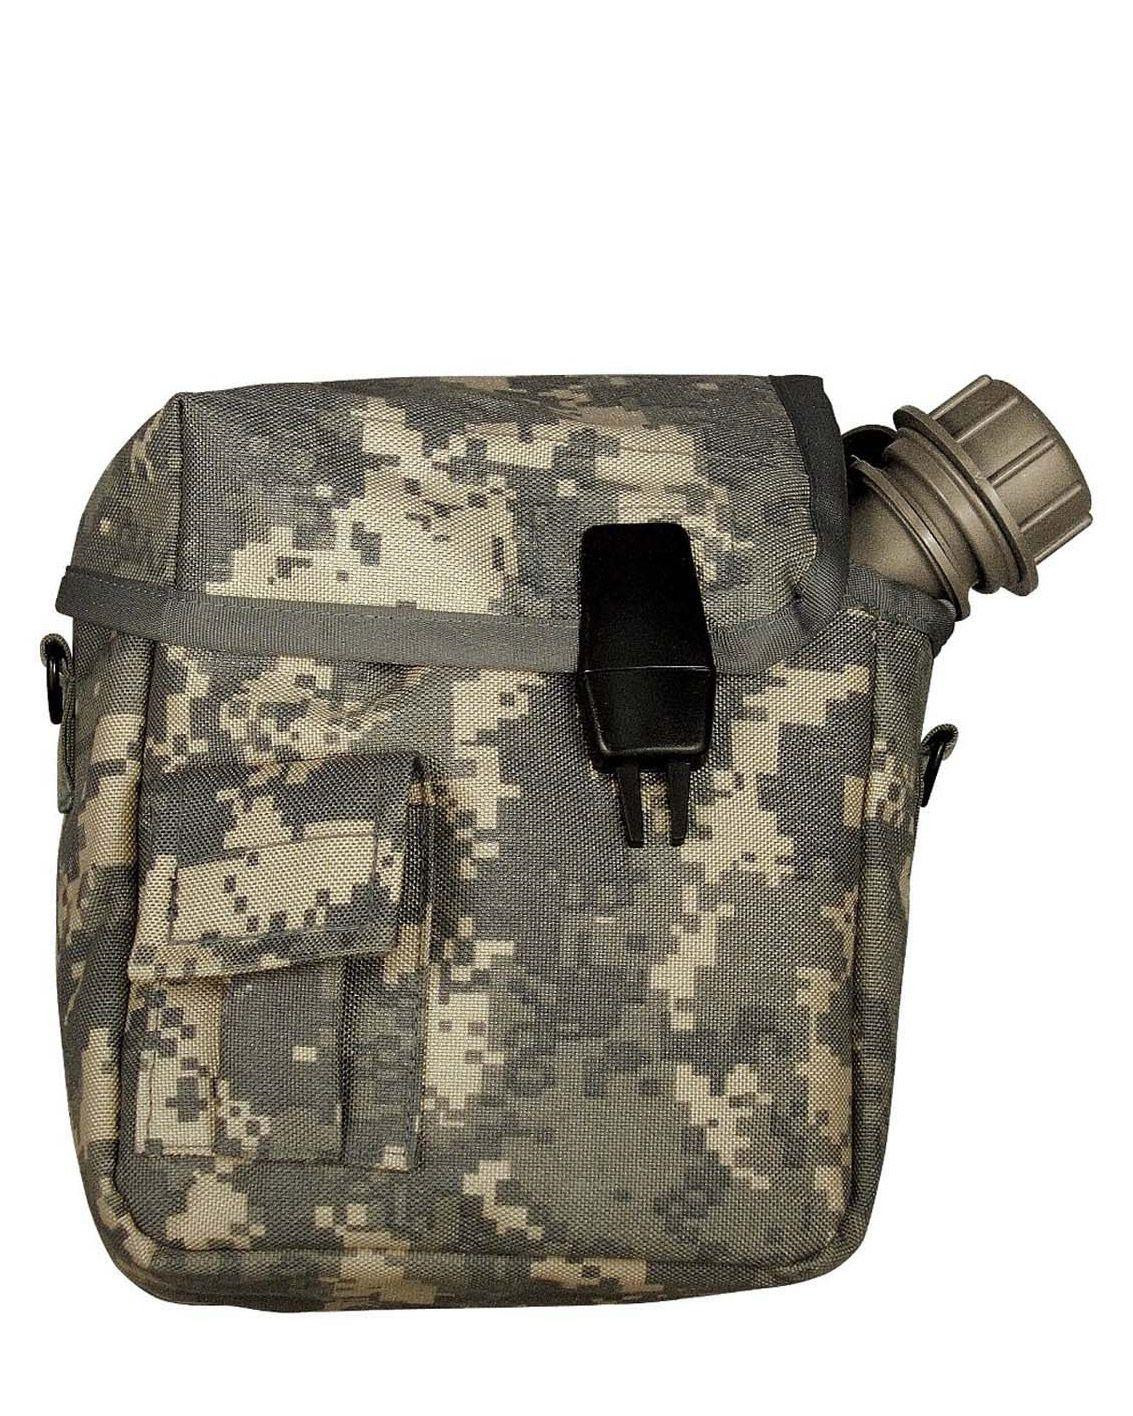 Image of   Rothco MOLLE 2 QT. Bladder Canteen Cover (ACU Camo, One Size)